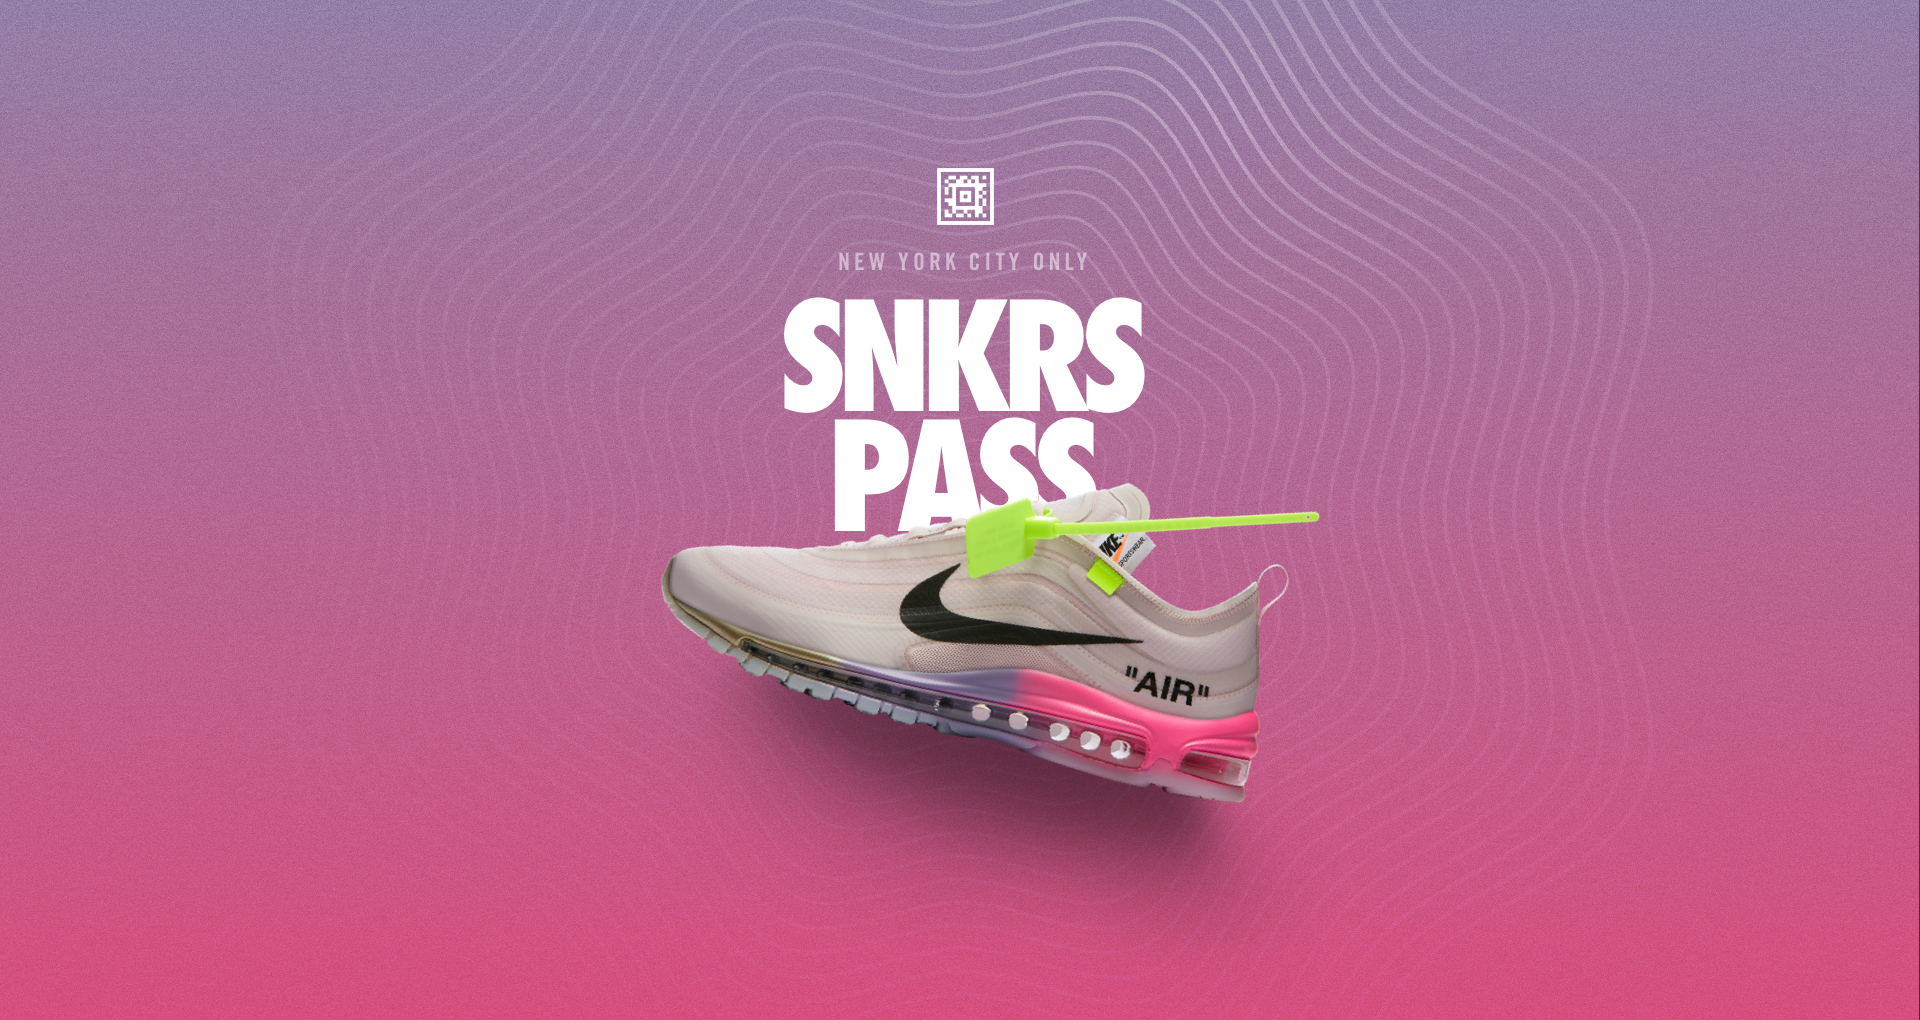 The Ten: Air Max 97 'Serena Williams' SNKRS NYC. Nike SNKRS